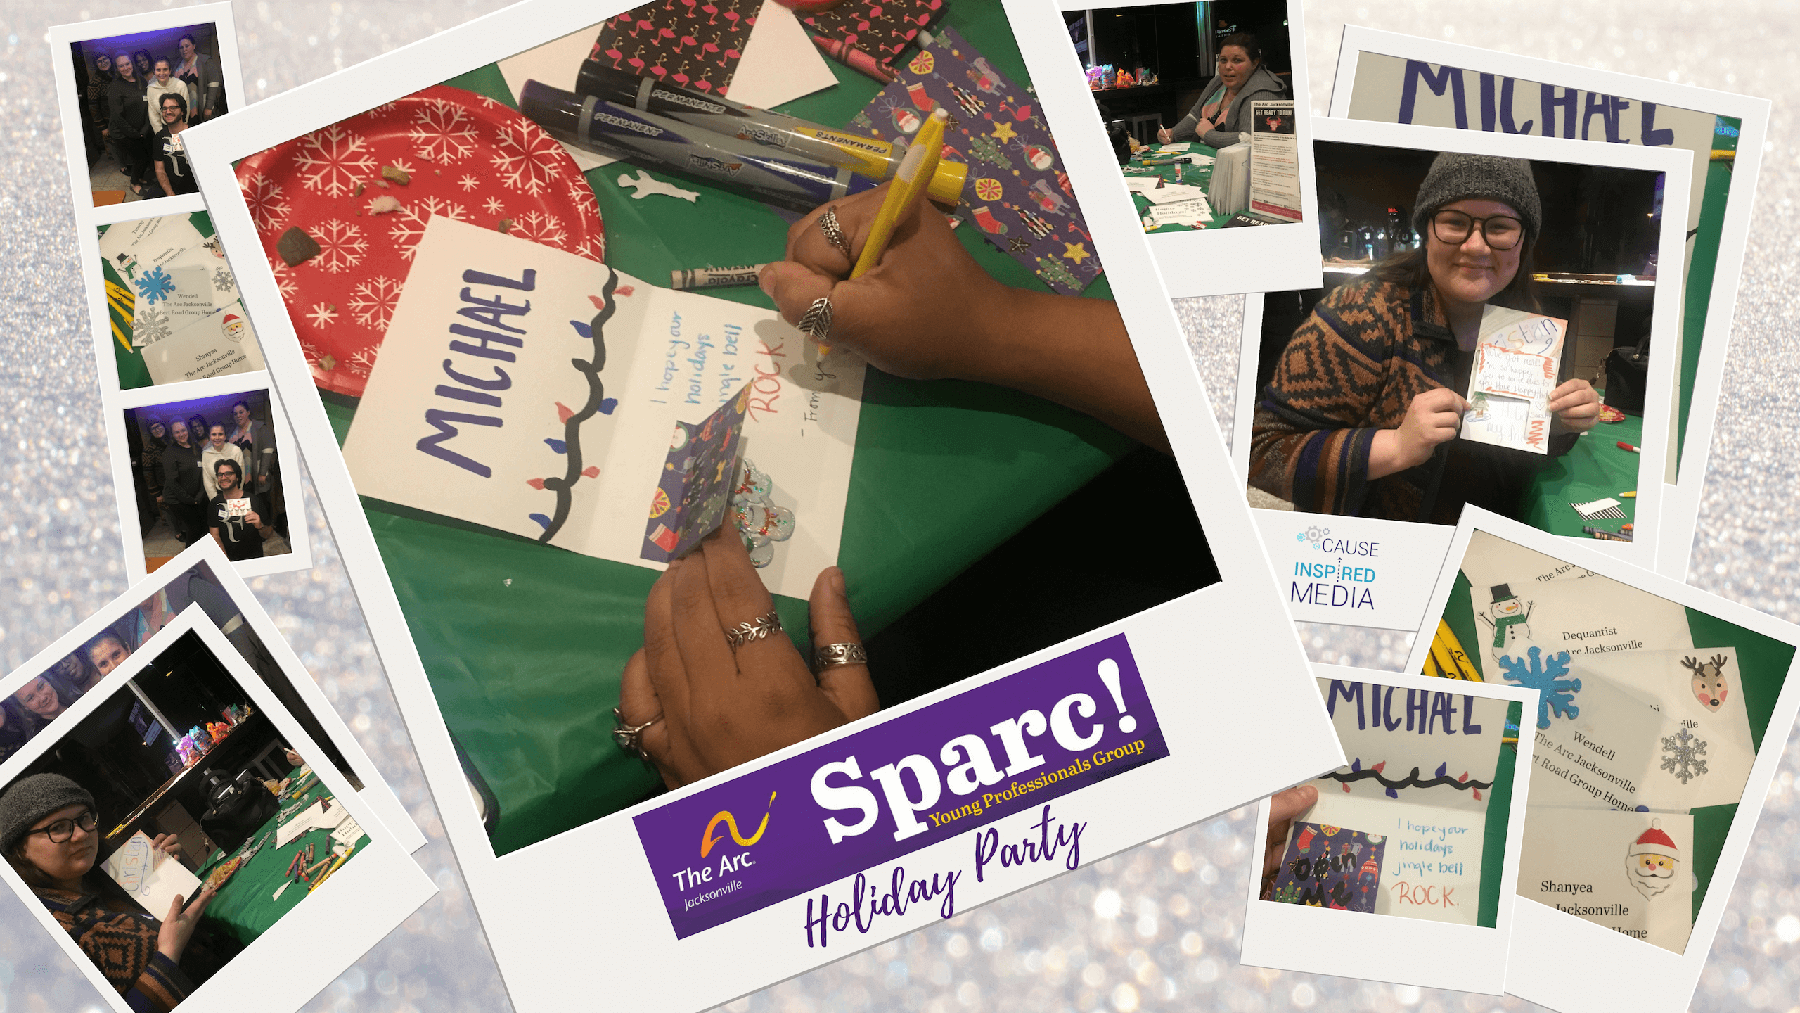 Cause Inspired Team Attends Sparc! Holiday Social